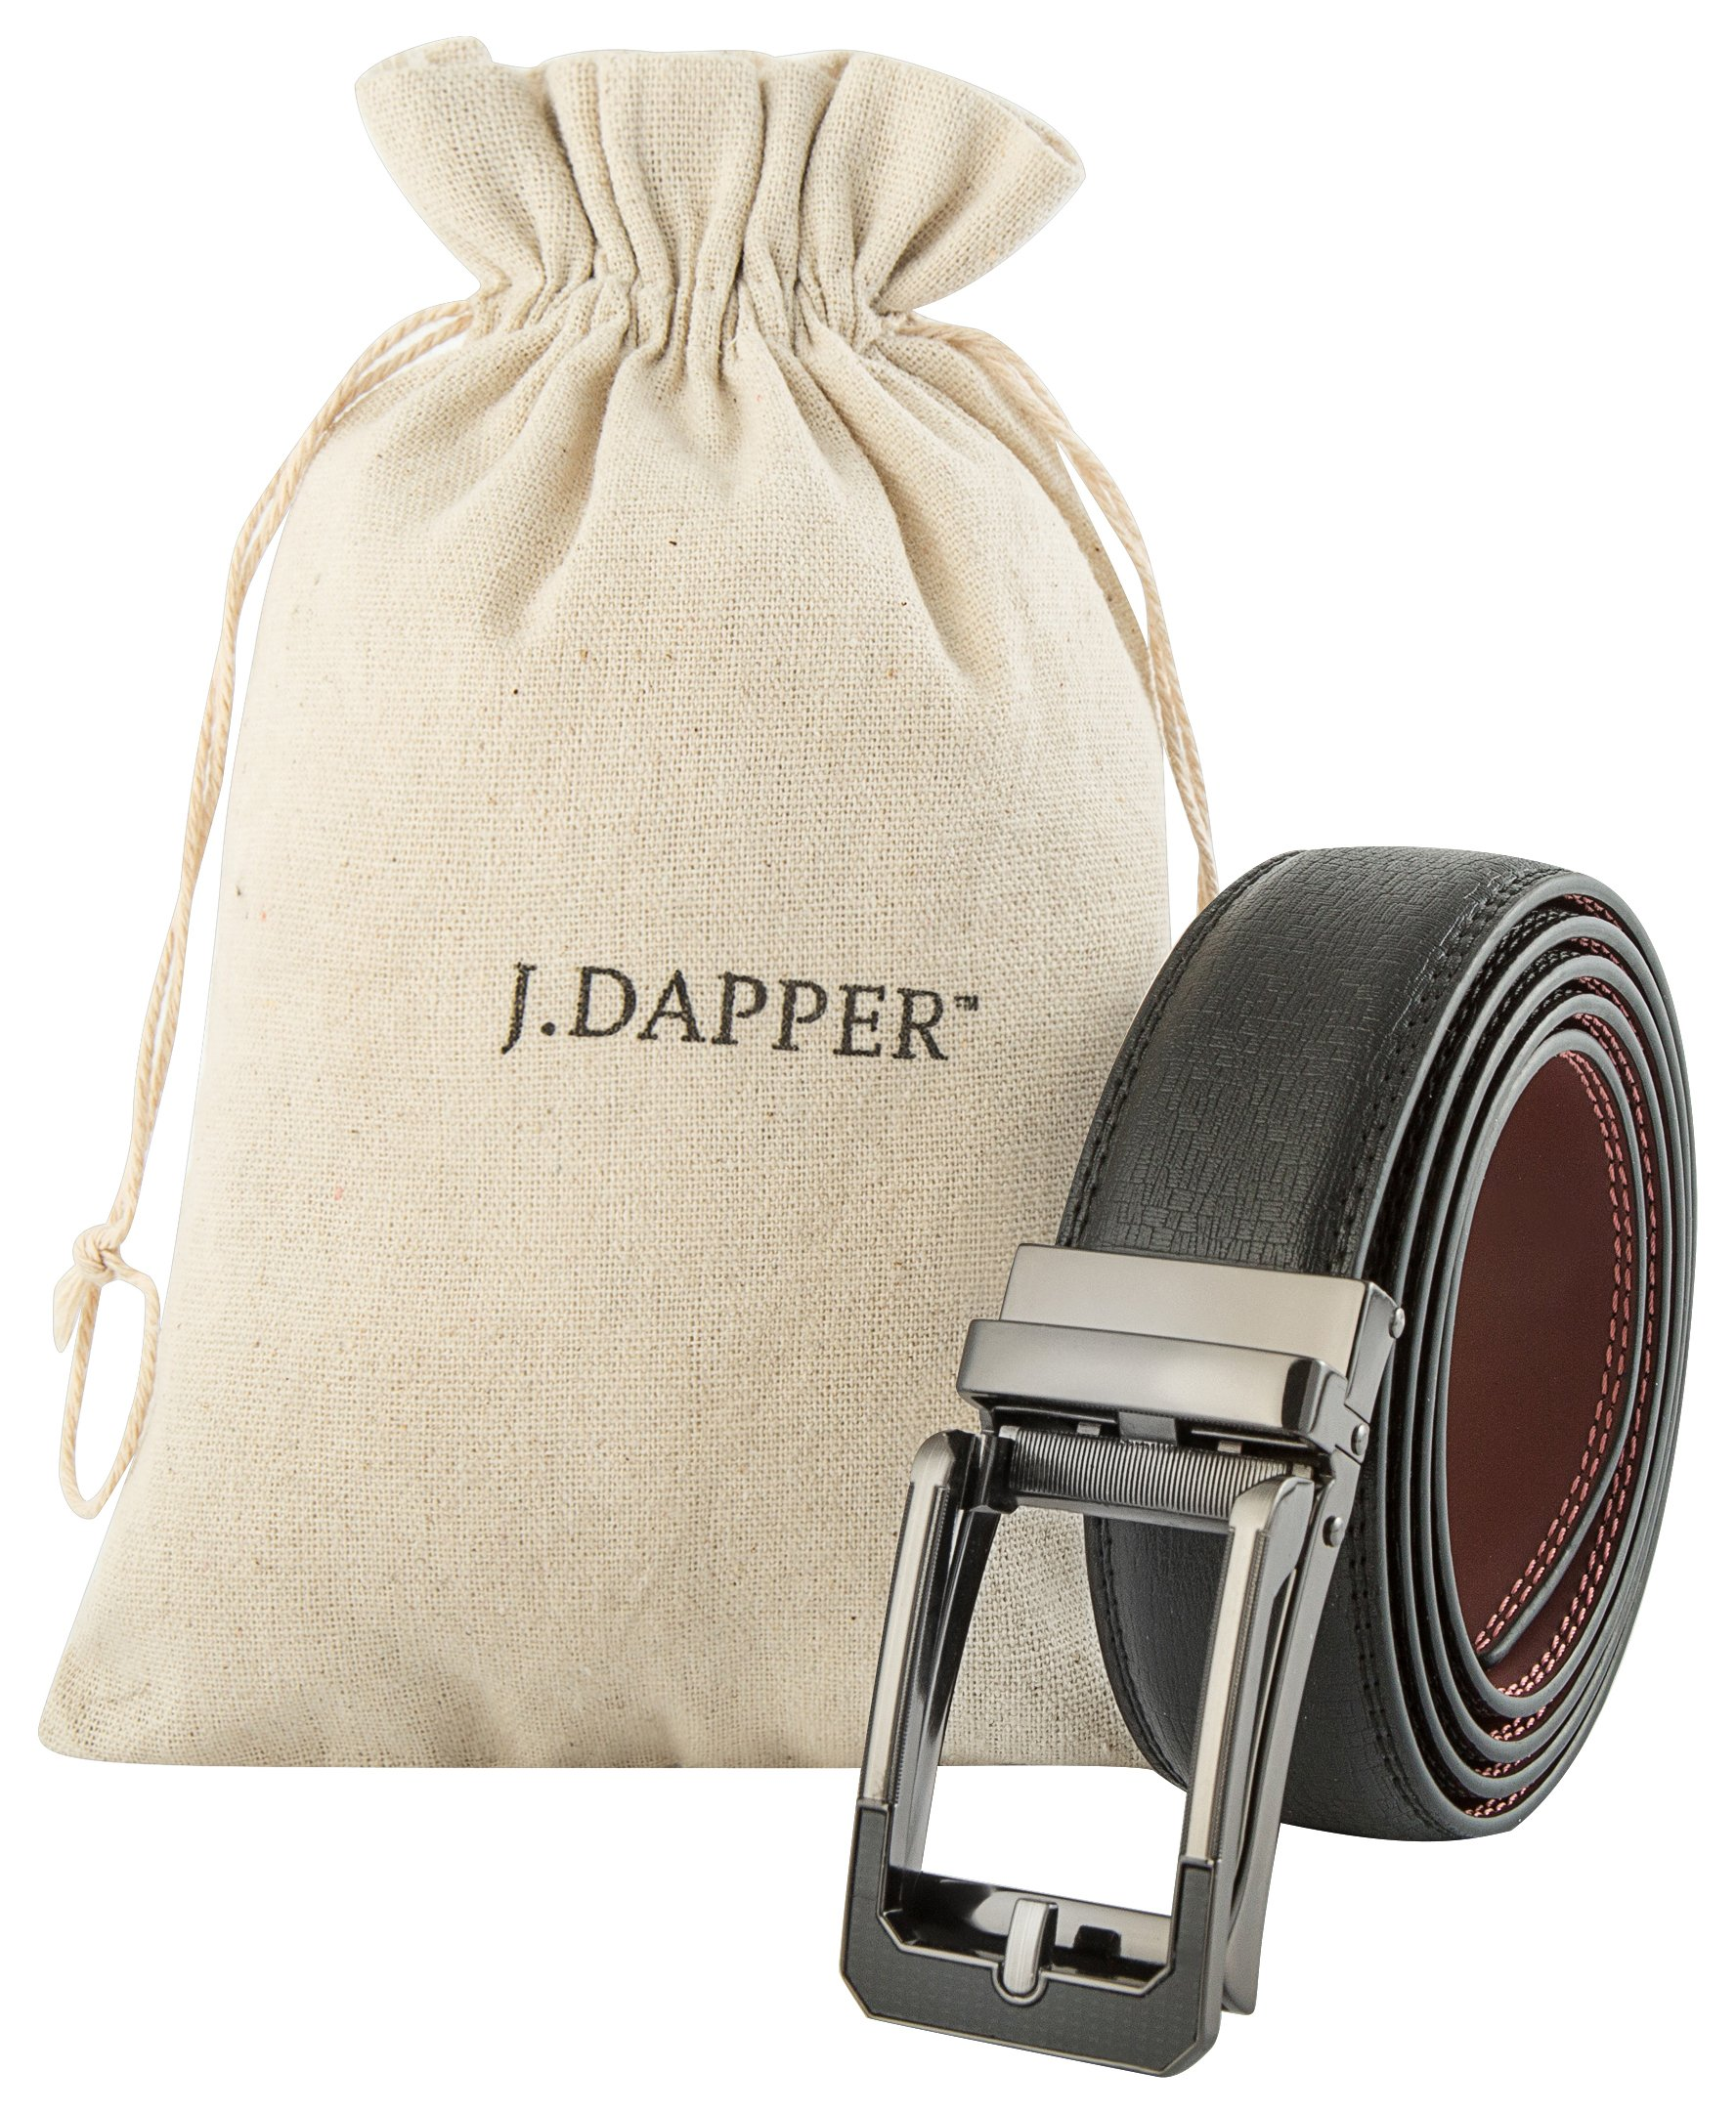 Men's Black Ratchet Belt - Black and Silver Open Style - by J. Dapper by J. Dapper (Image #2)